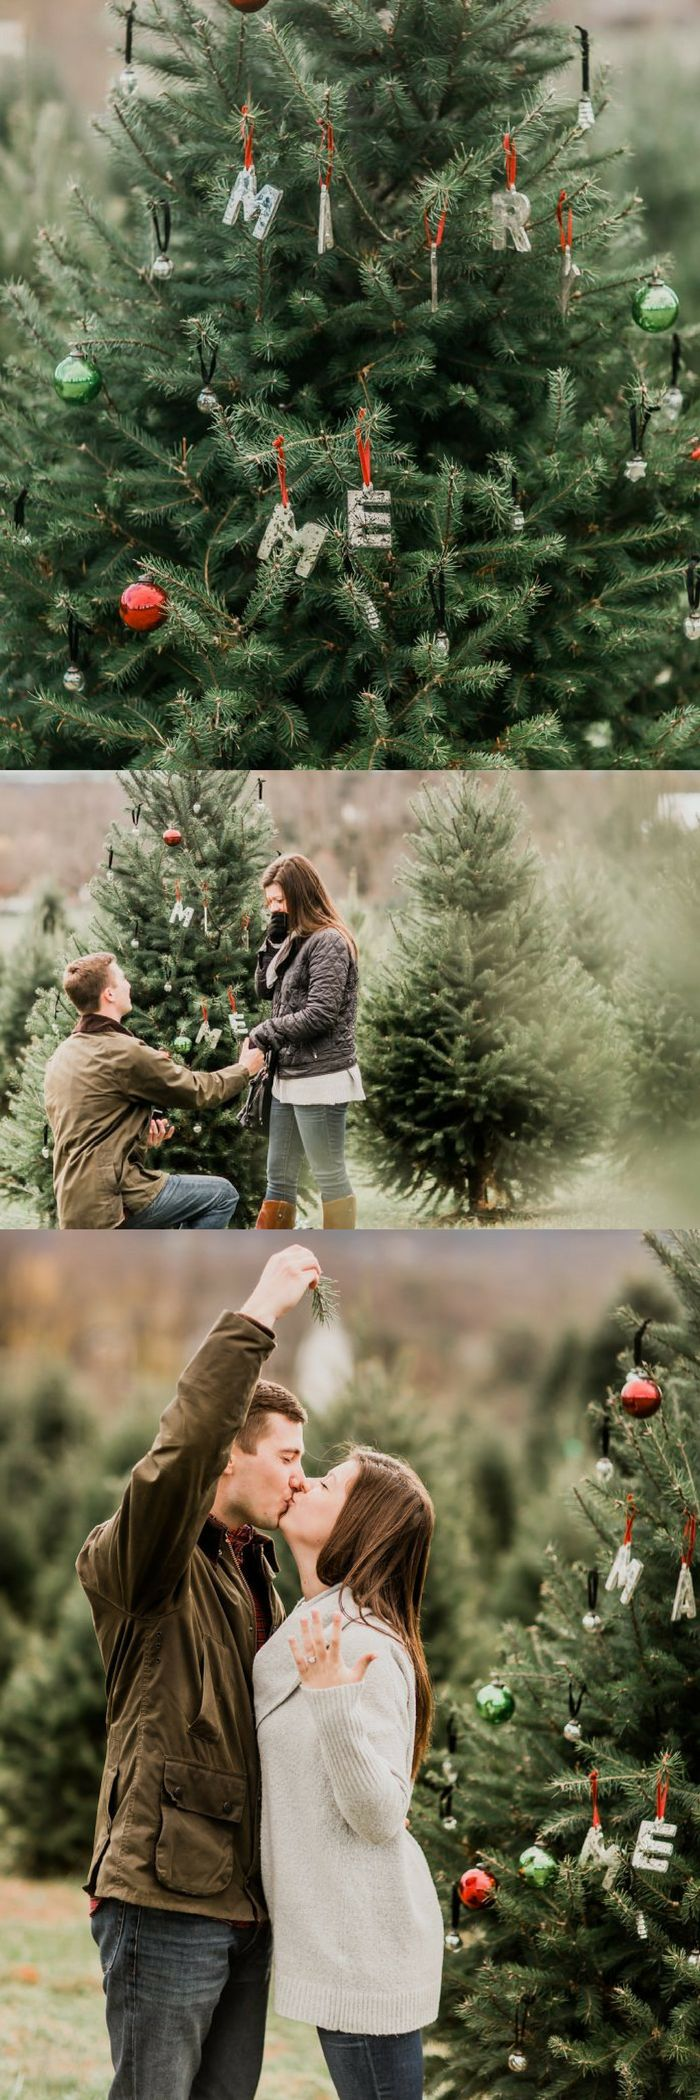 Engagement ring box christmas ornament - Paige And Aj S Christmas Tree Farm Proposal On Howheasked Com